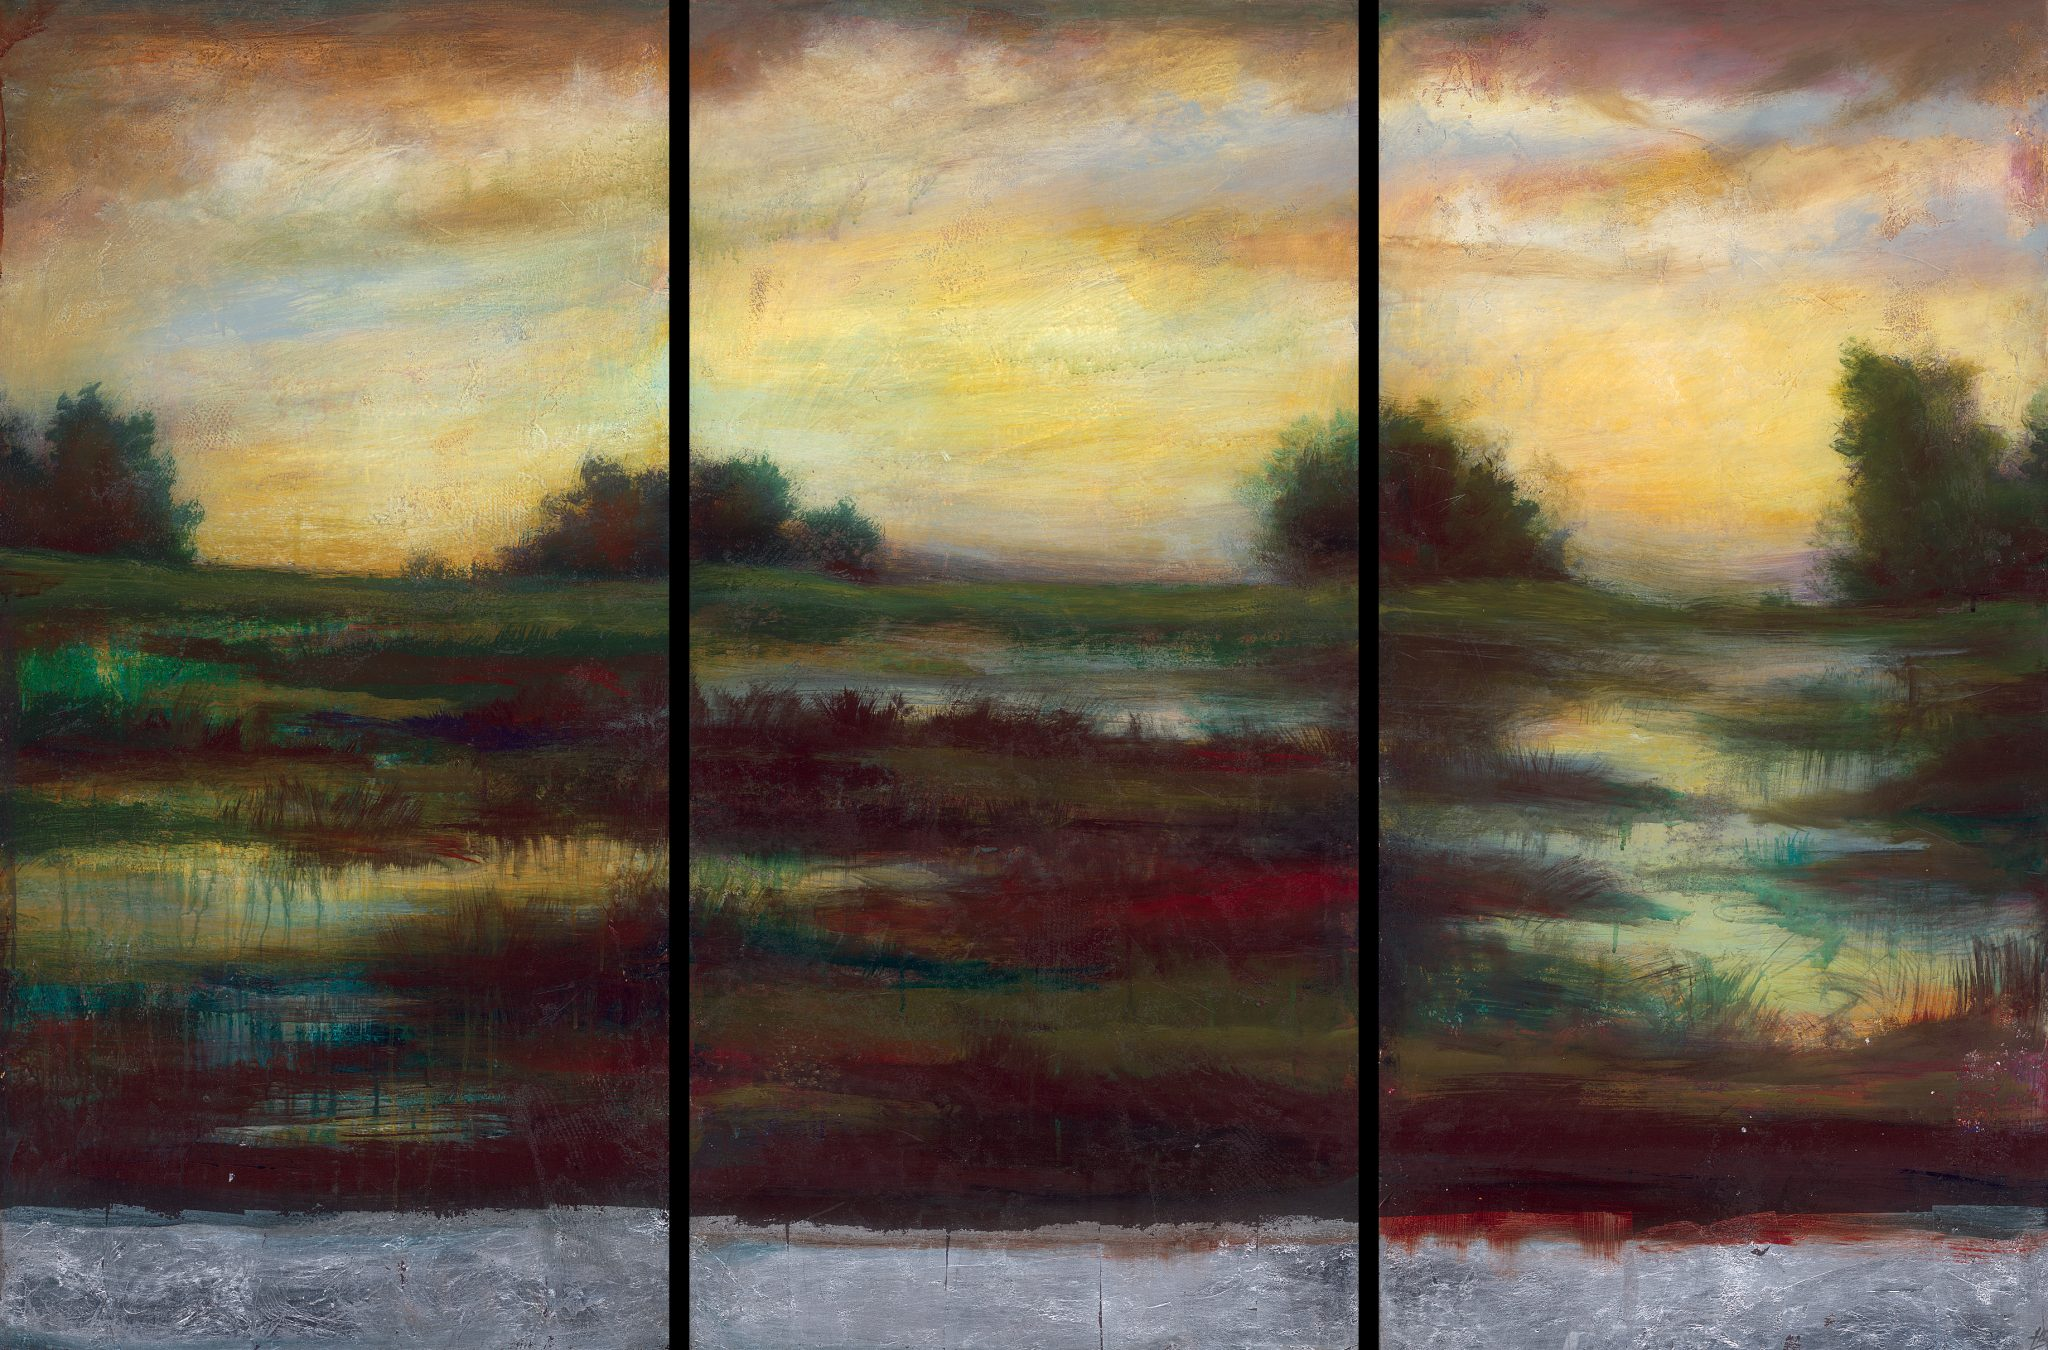 """The Last Emerald Vista III"" (2008) by Holland Berkley, Park West Gallery."